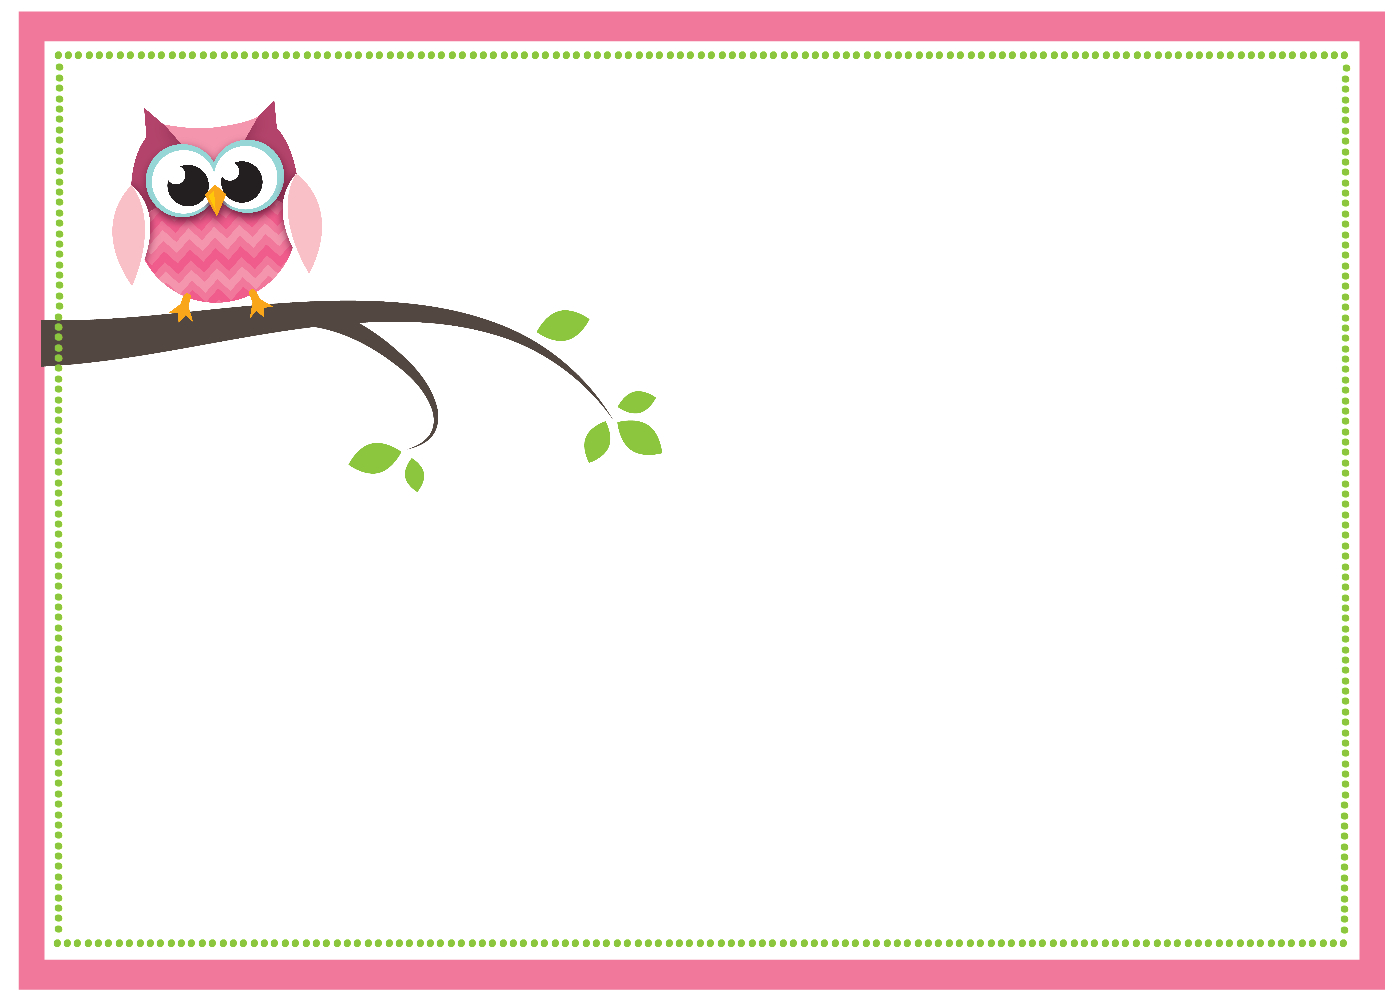 Free Printable Owl Baby Shower Invitations {& Other Printables} - Free Printable Blank Baby Shower Invitations